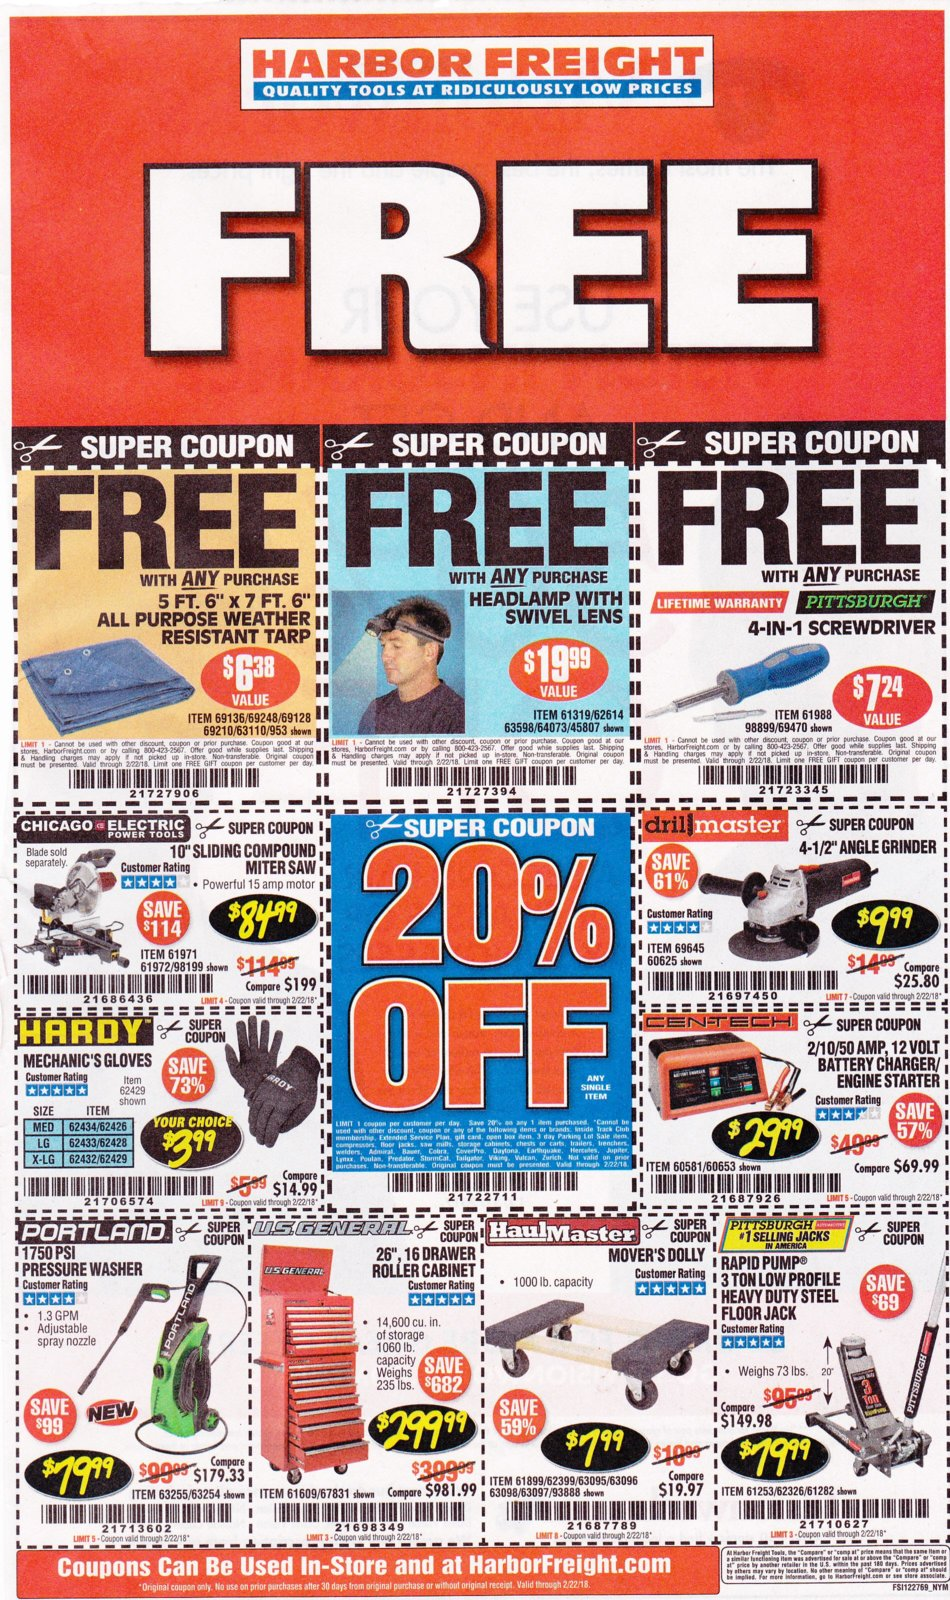 Harbor Freight coupons which are good until 2-22-2018..jpg